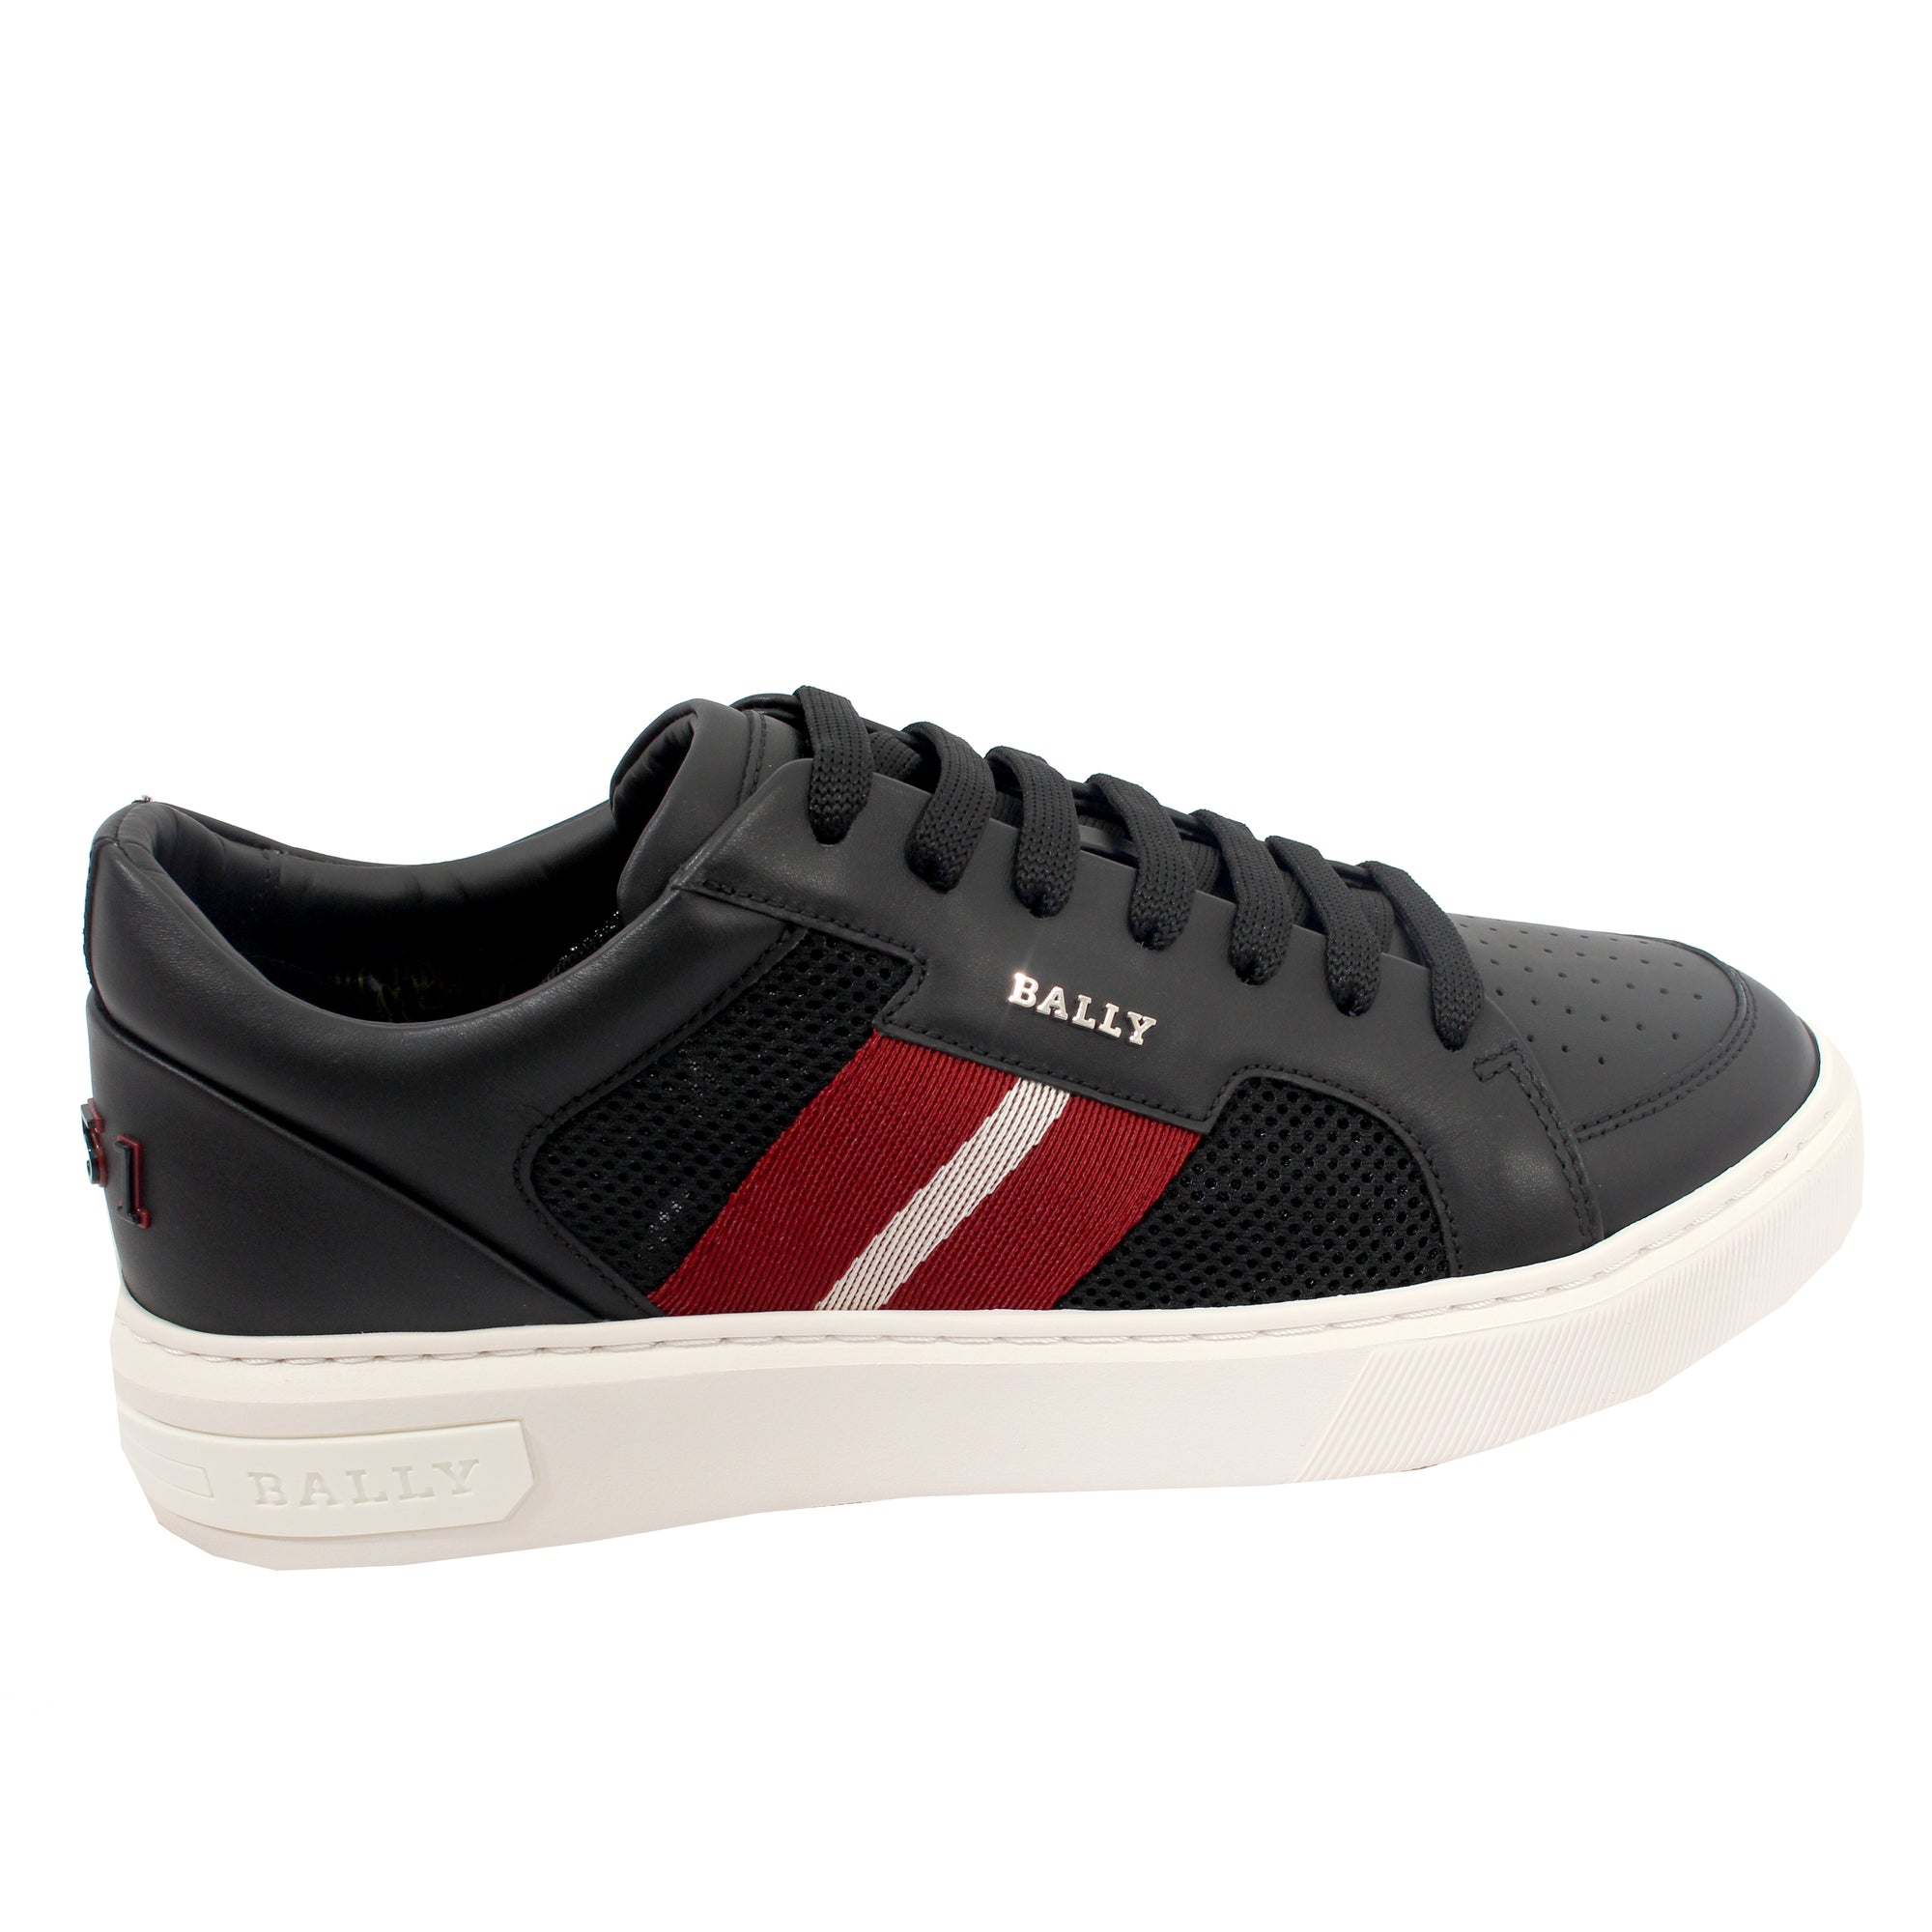 Mely's-T/00 Leather Sneakers in Black